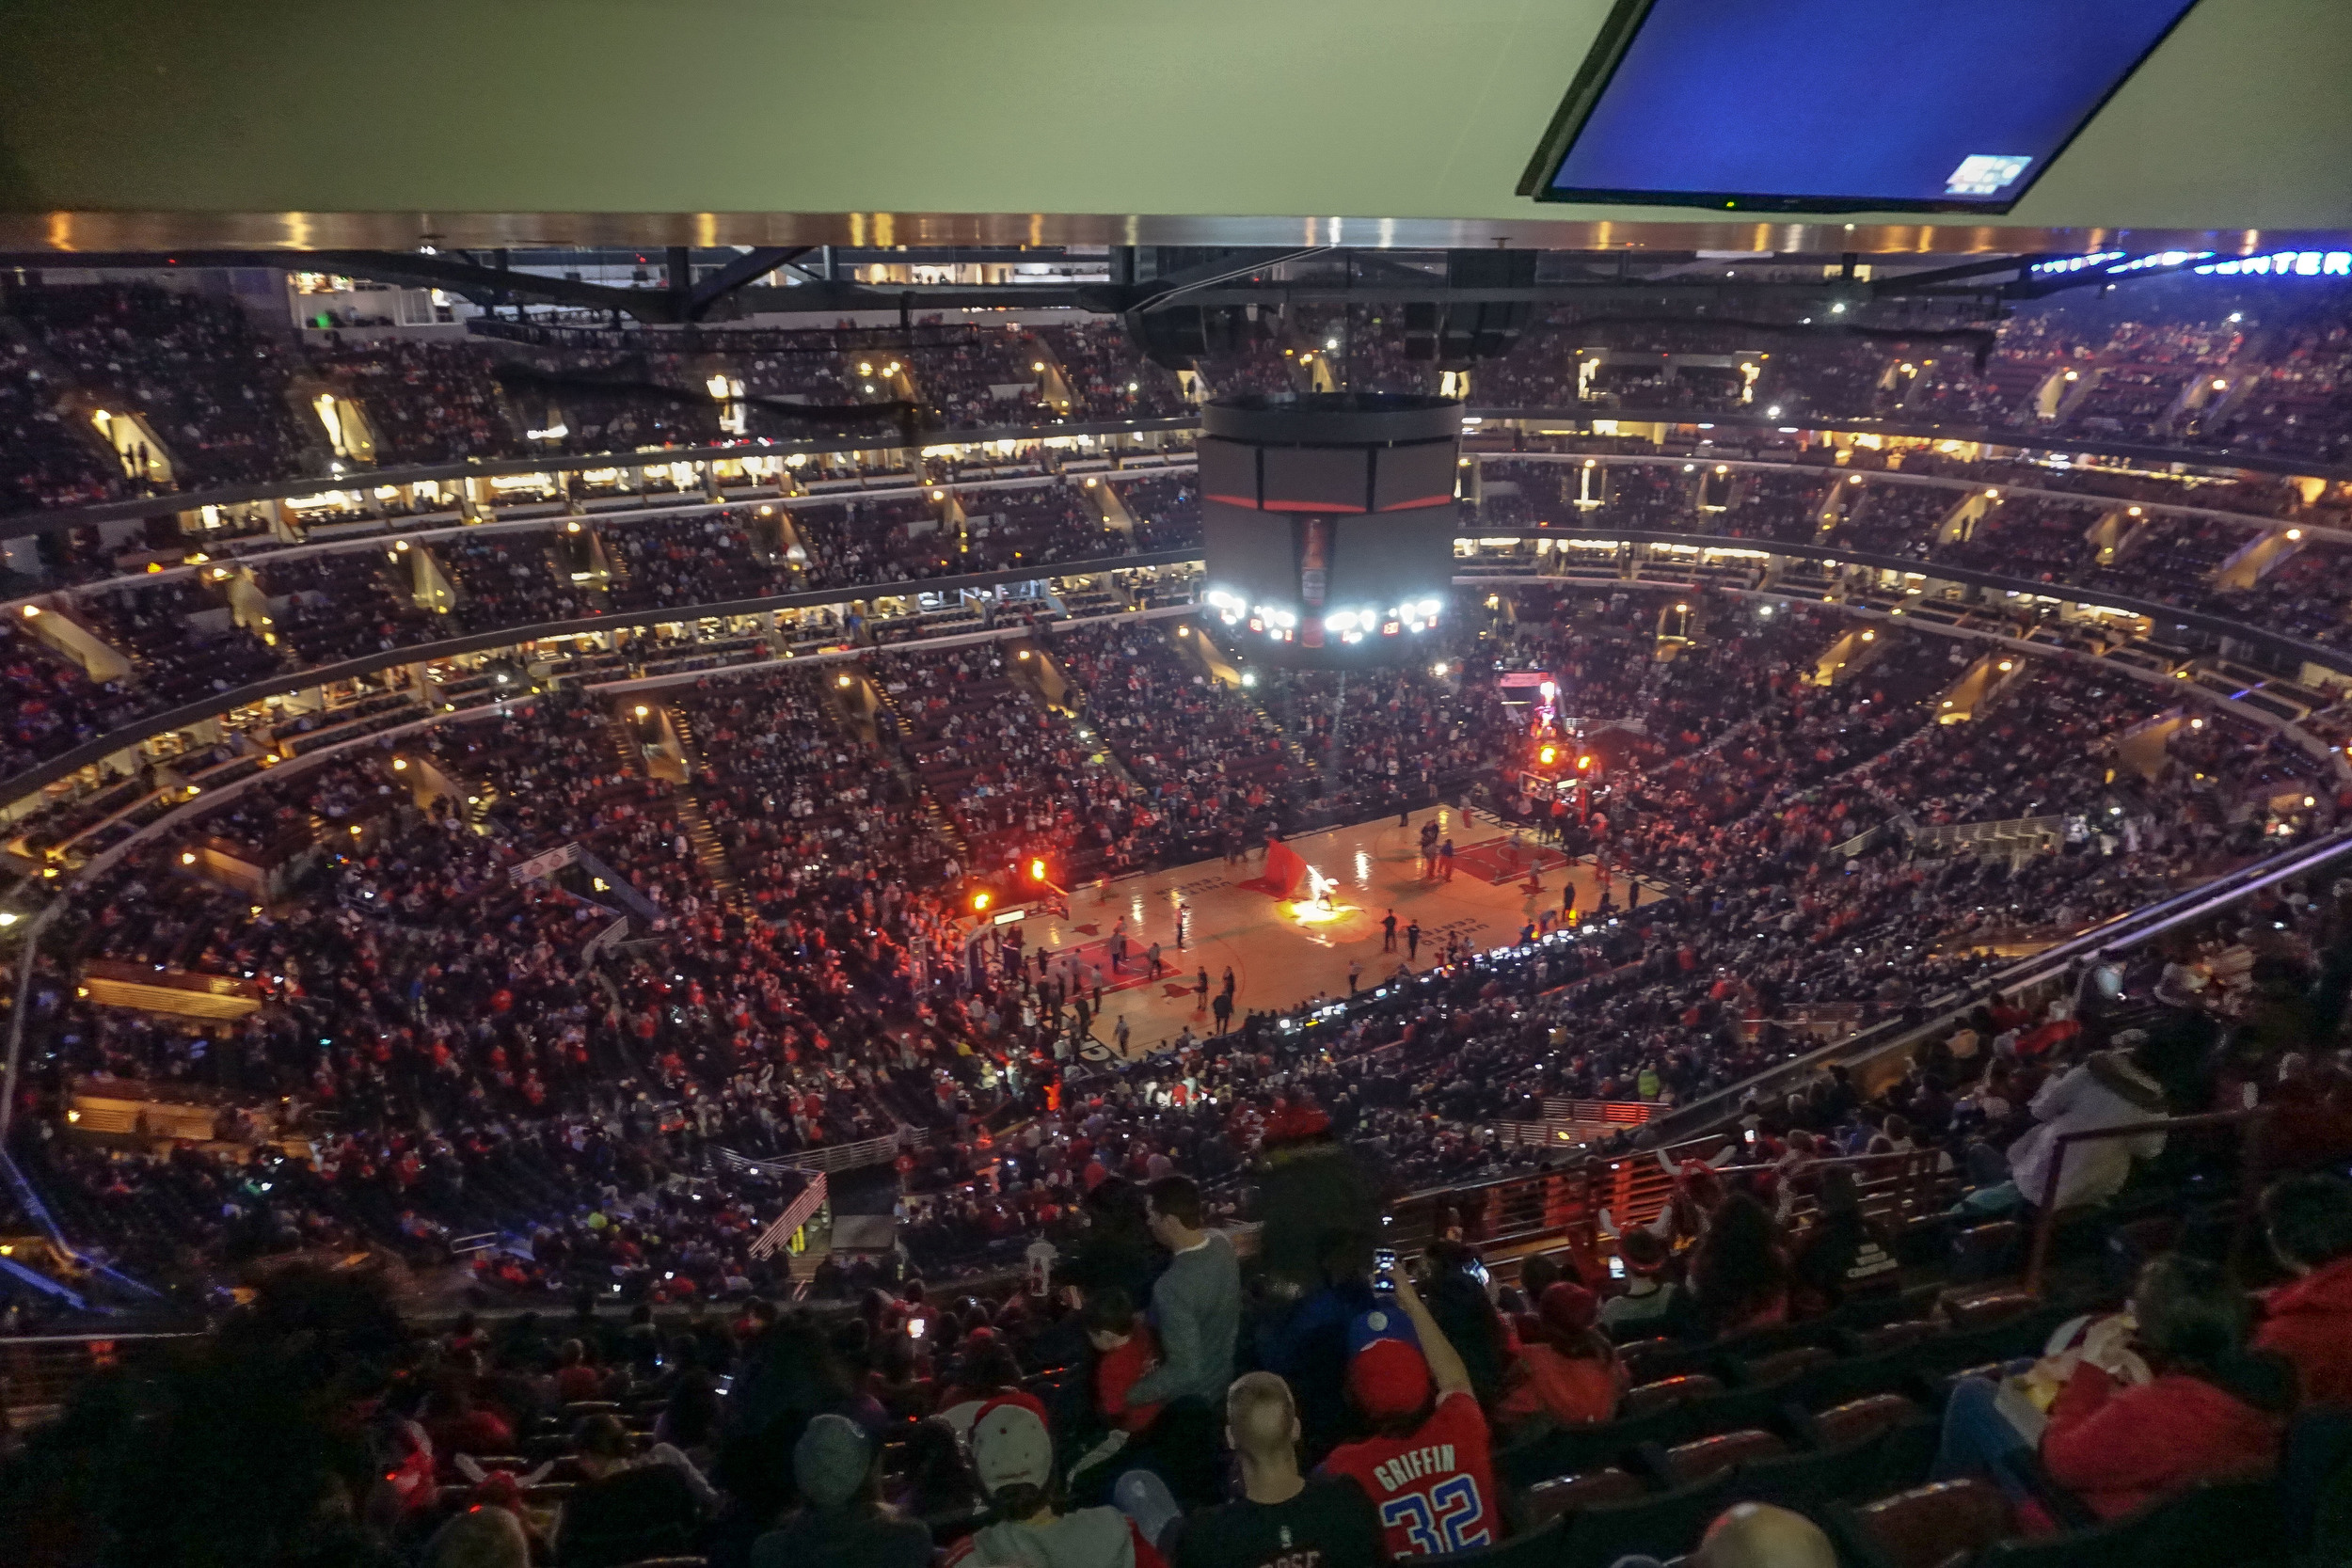 Basketball, Chicago Bulls vs LA Clippers. United States of America.